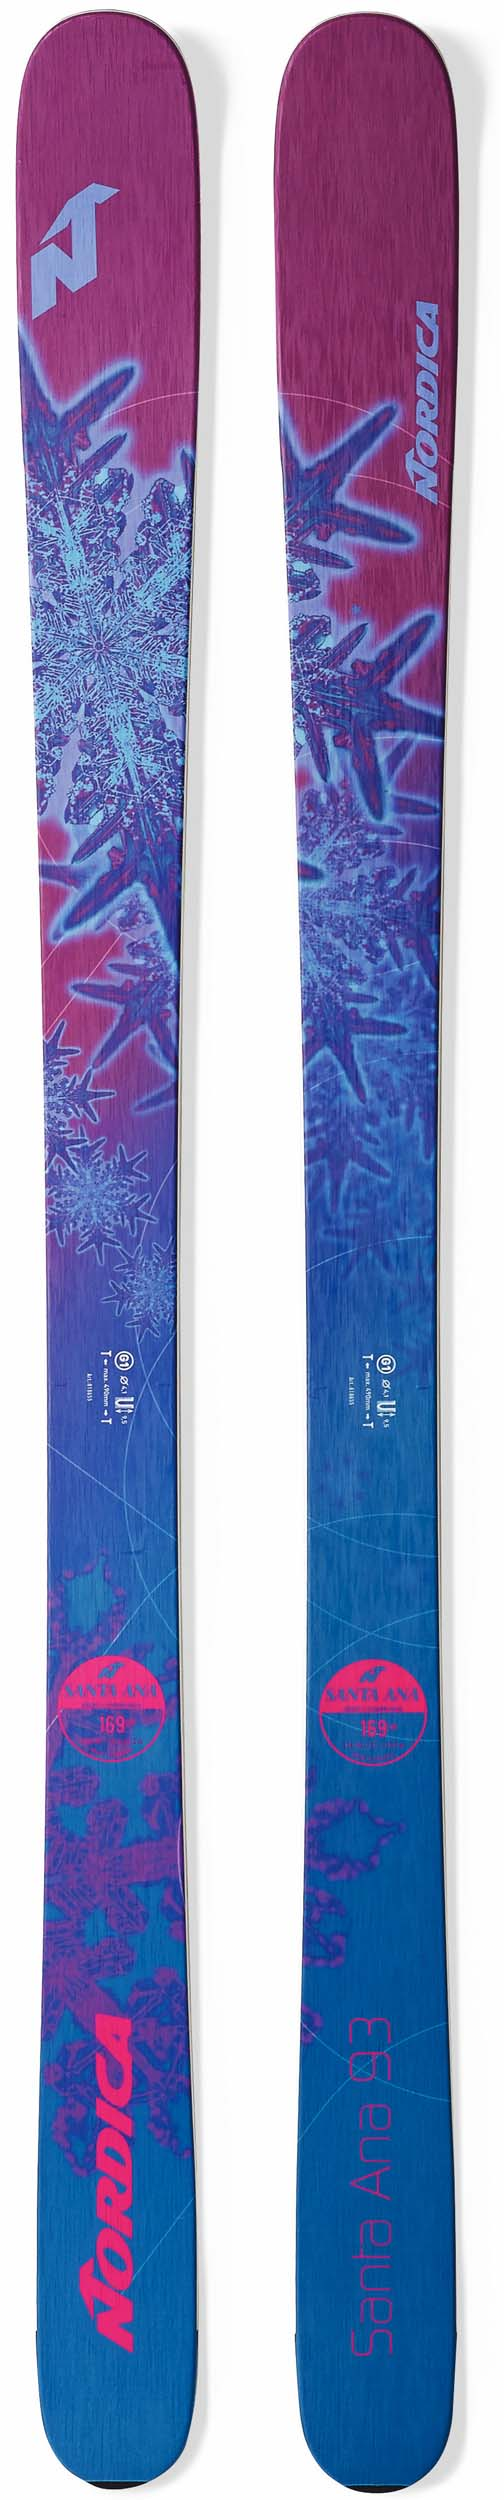 Nordica 2018 Santa Ana 93 Skis (Without Bindings / Flat) NEW !! 161cm